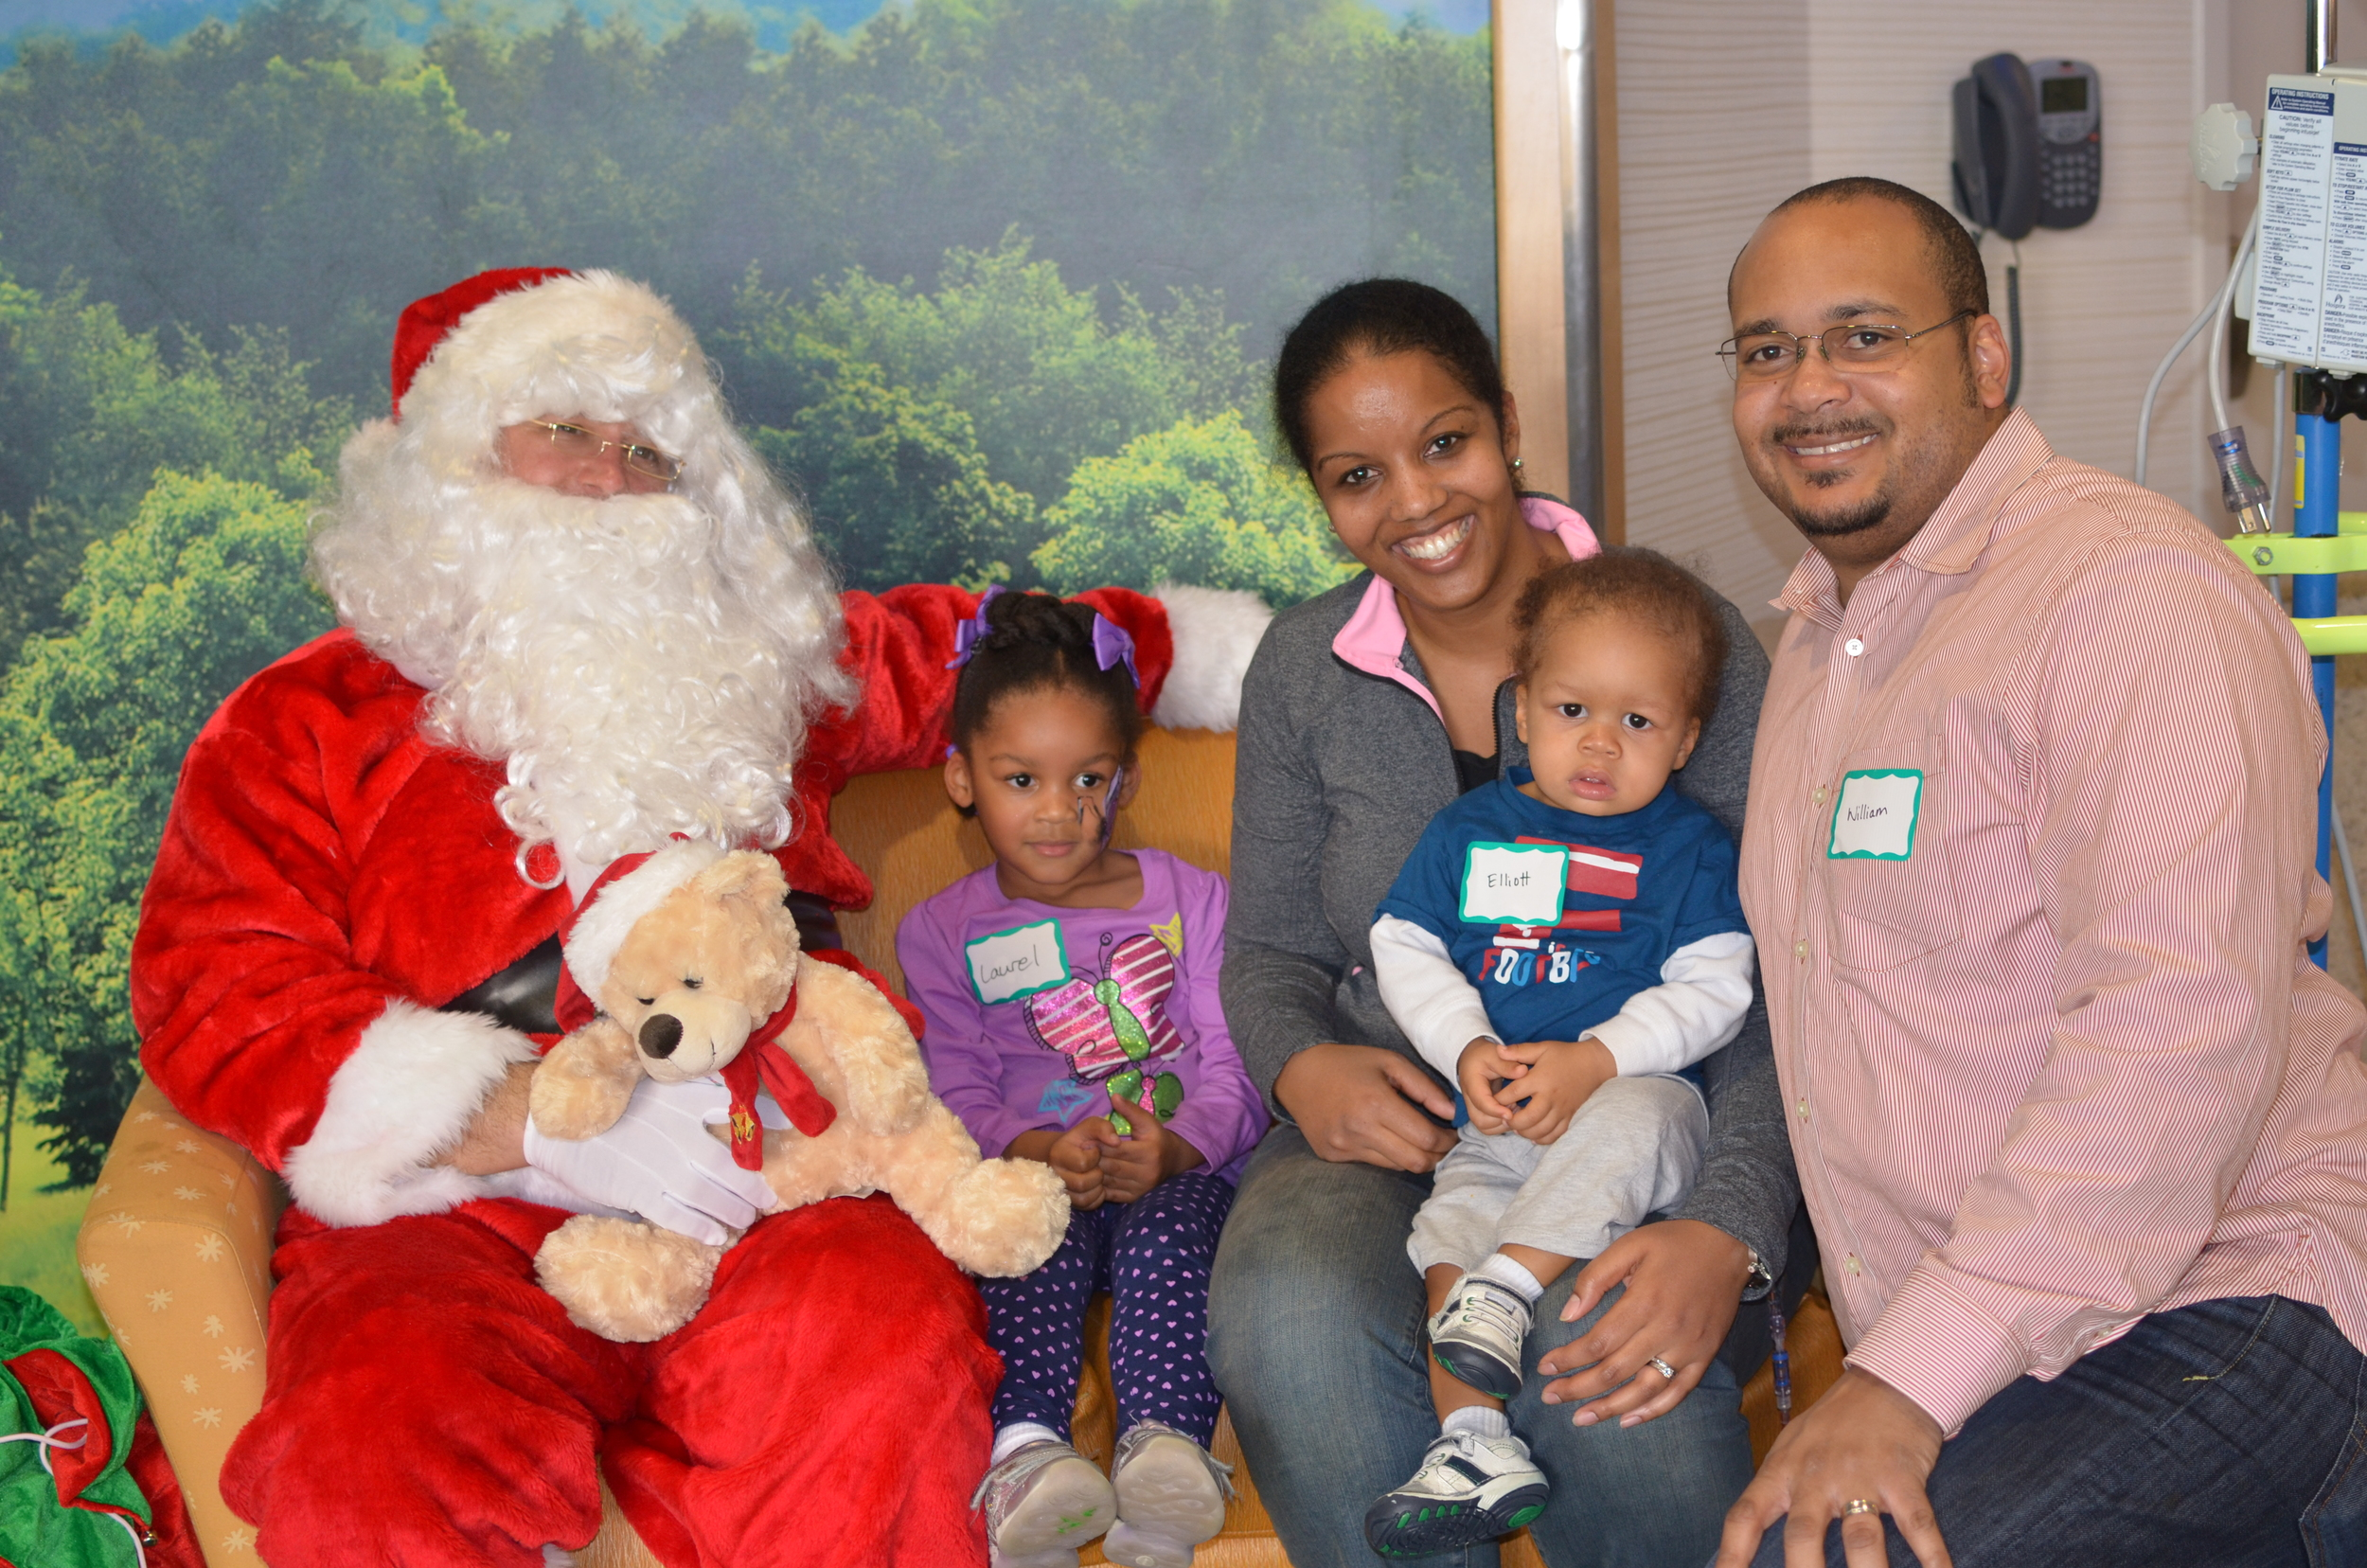 Day 135: Family photo with Santa during Christmas party